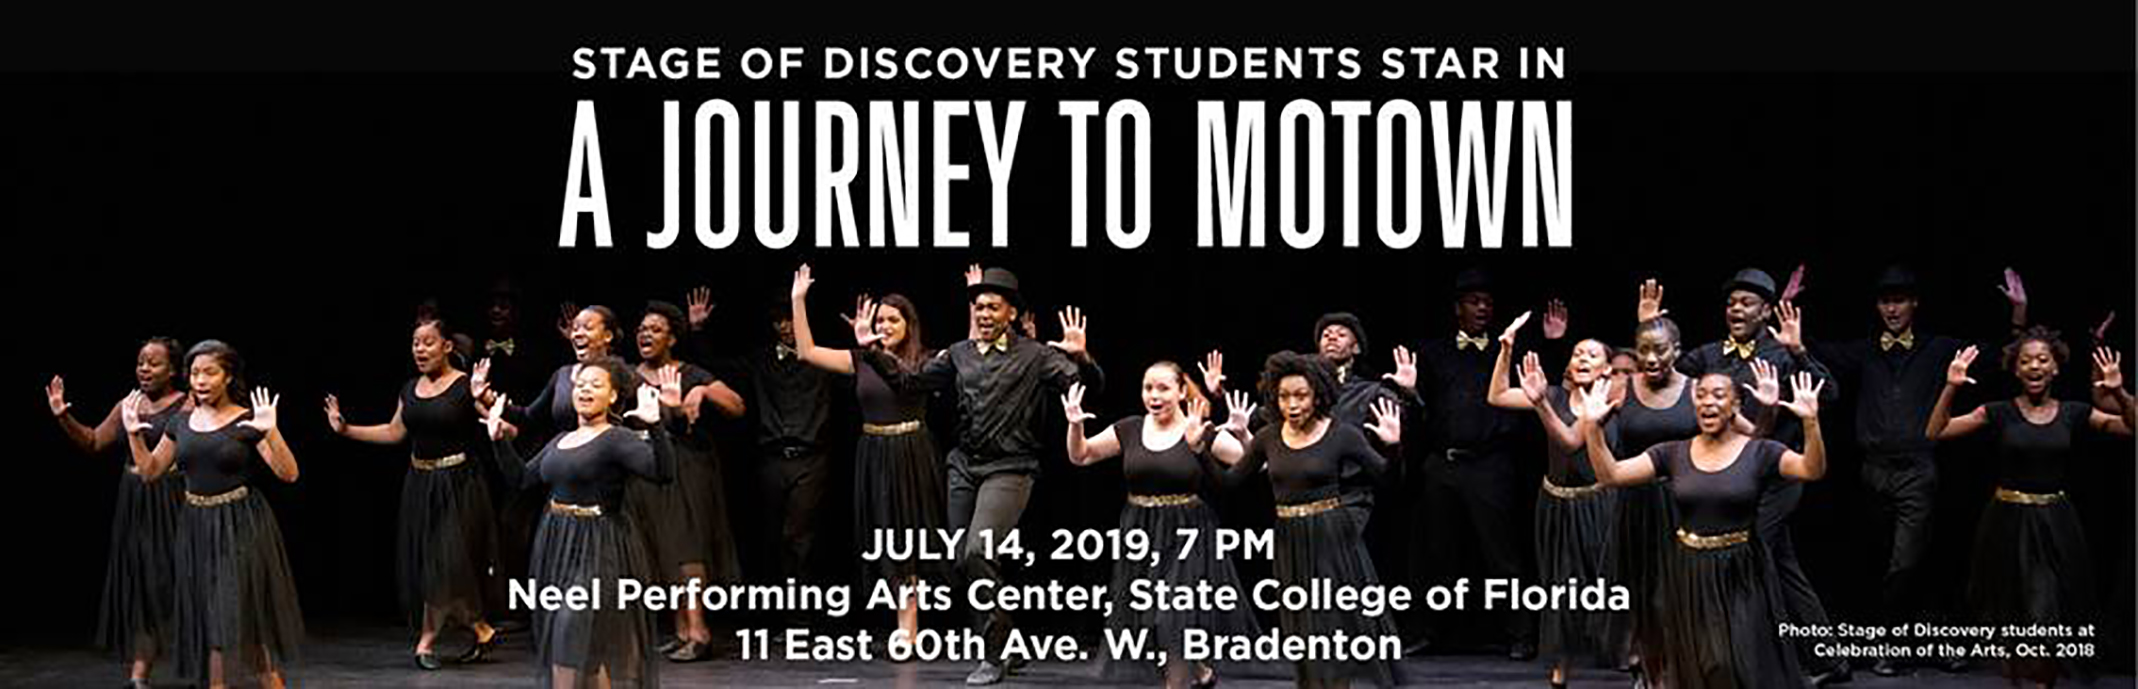 A Journey To Motown